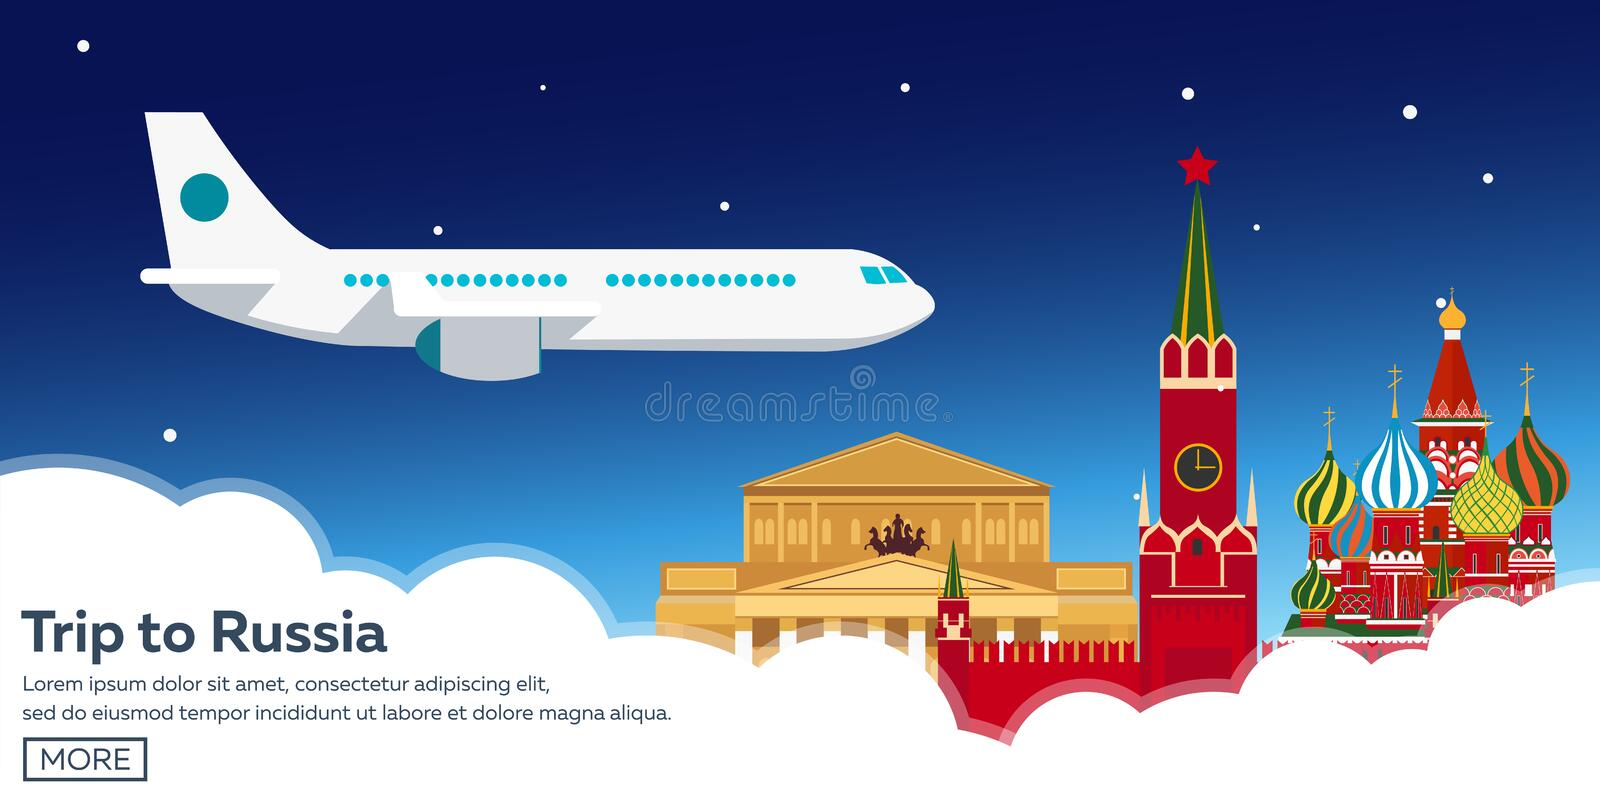 Trip to Russia, Moscow. Tourism. Travelling illustration. Modern flat design. Travel by airplane, vacation, adventure, trip. vector illustration